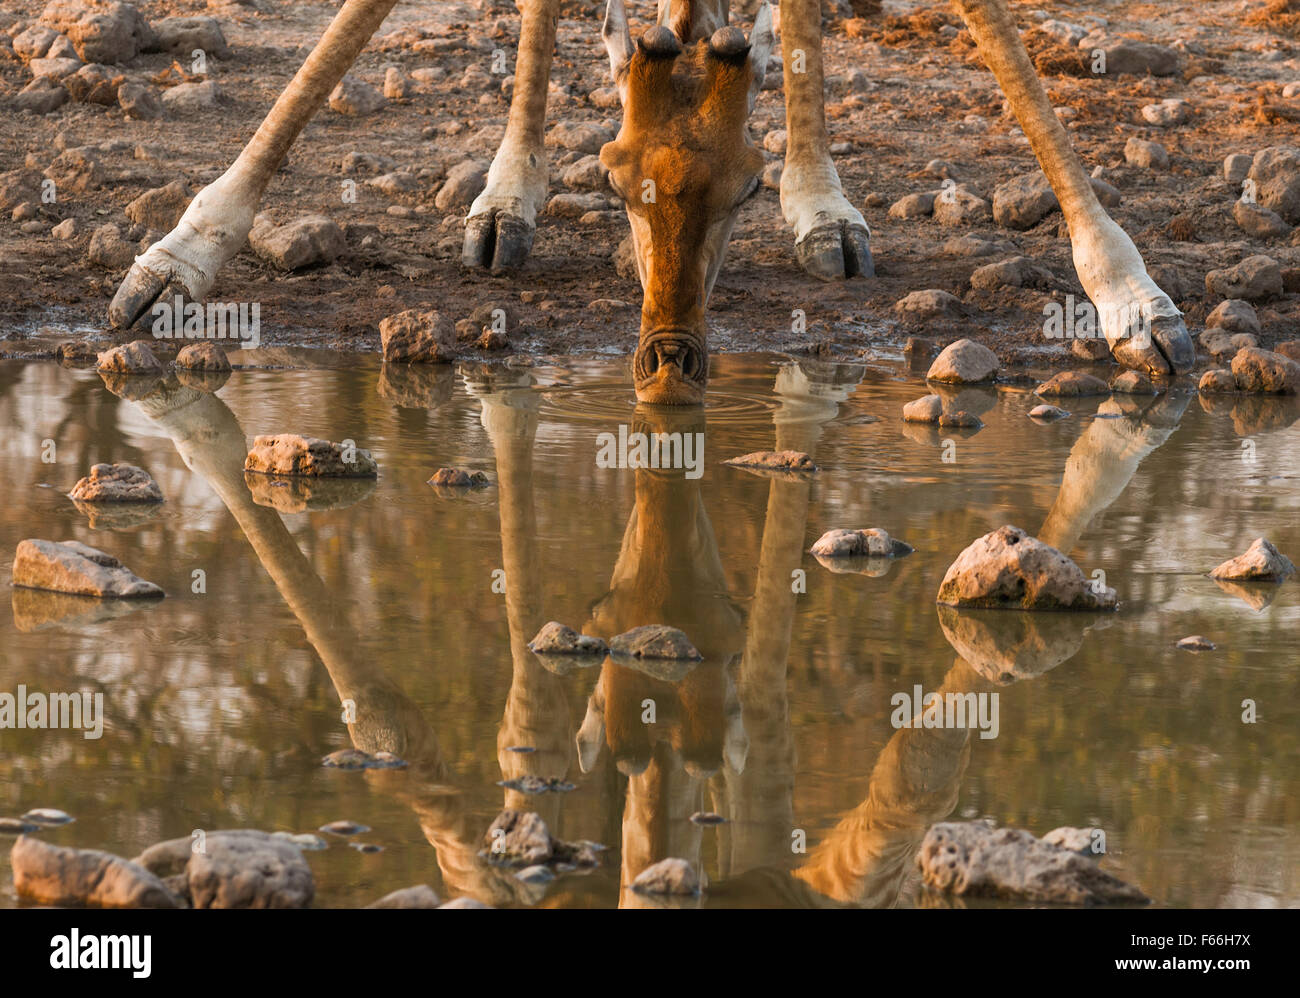 Giraffe and Its Reflection head and legs only - Stock Image